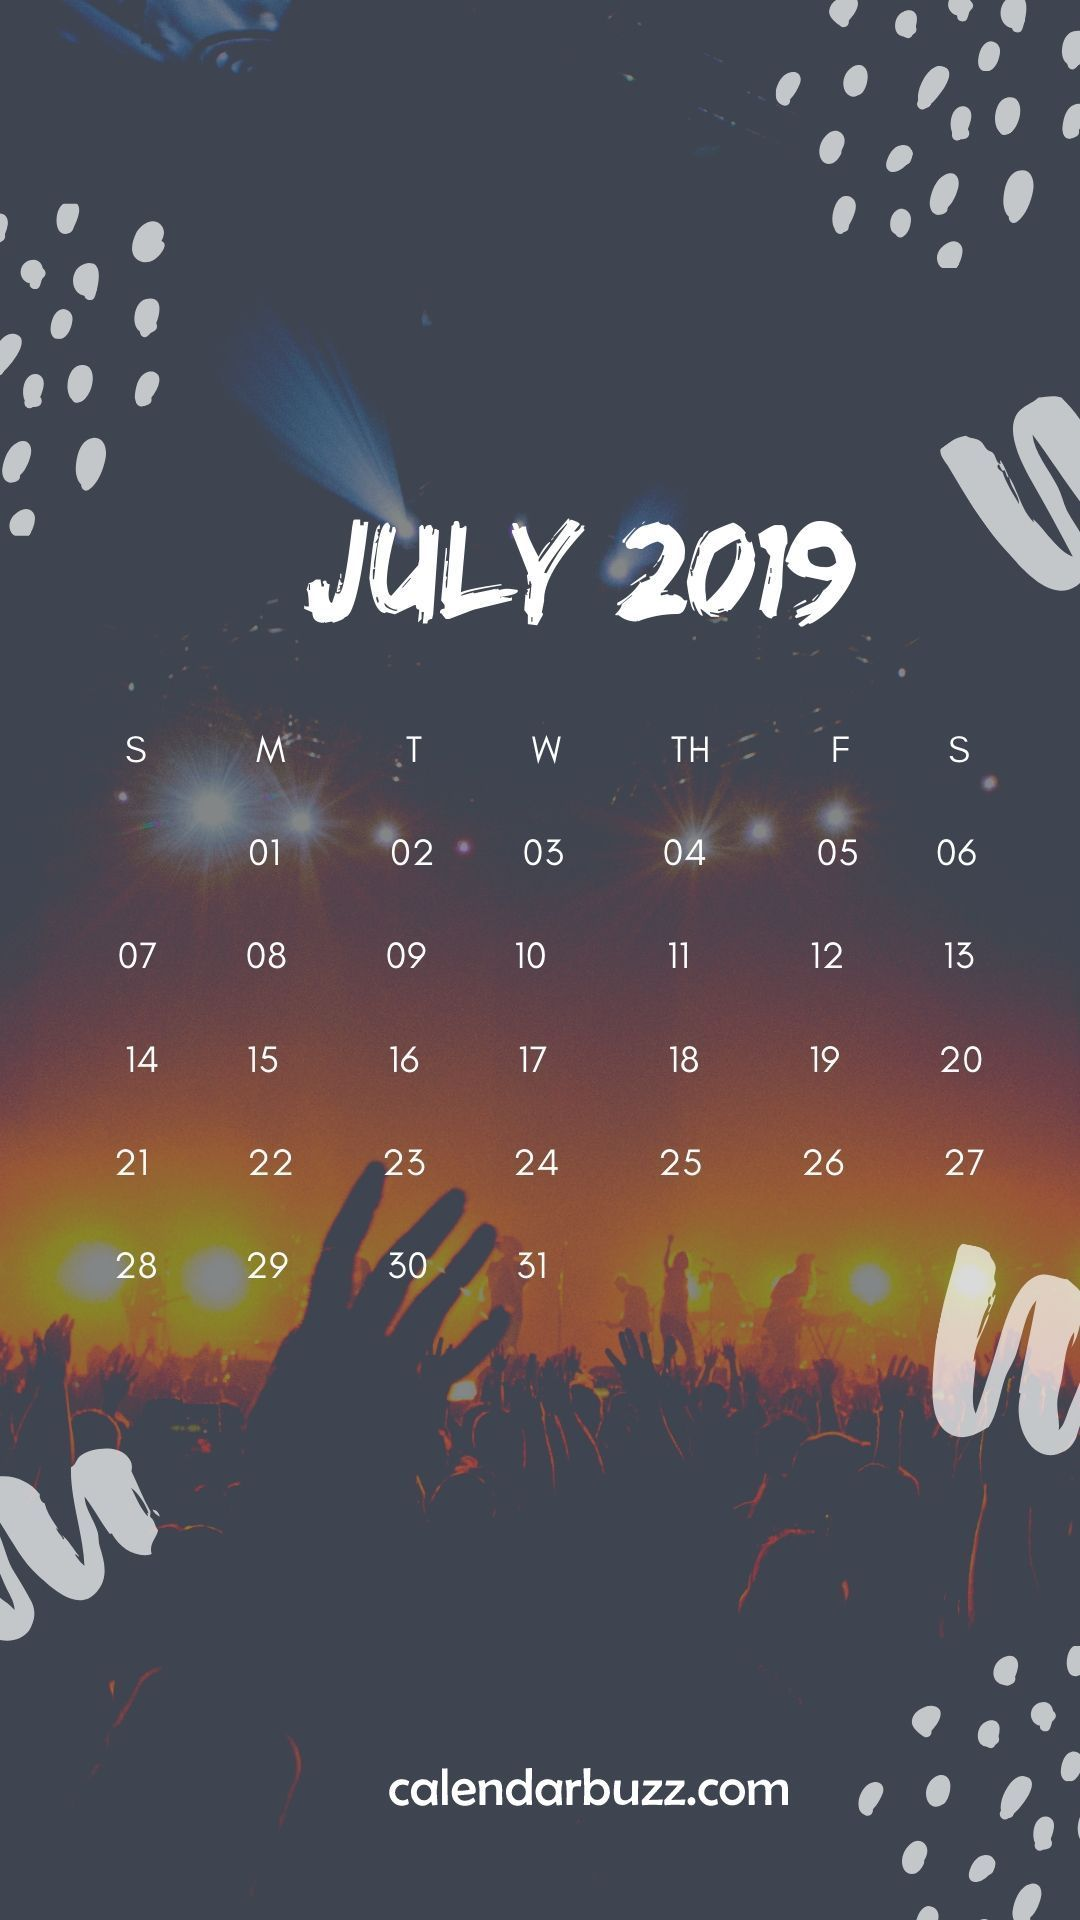 July 2019 Printable Wall Calendar For House, Office